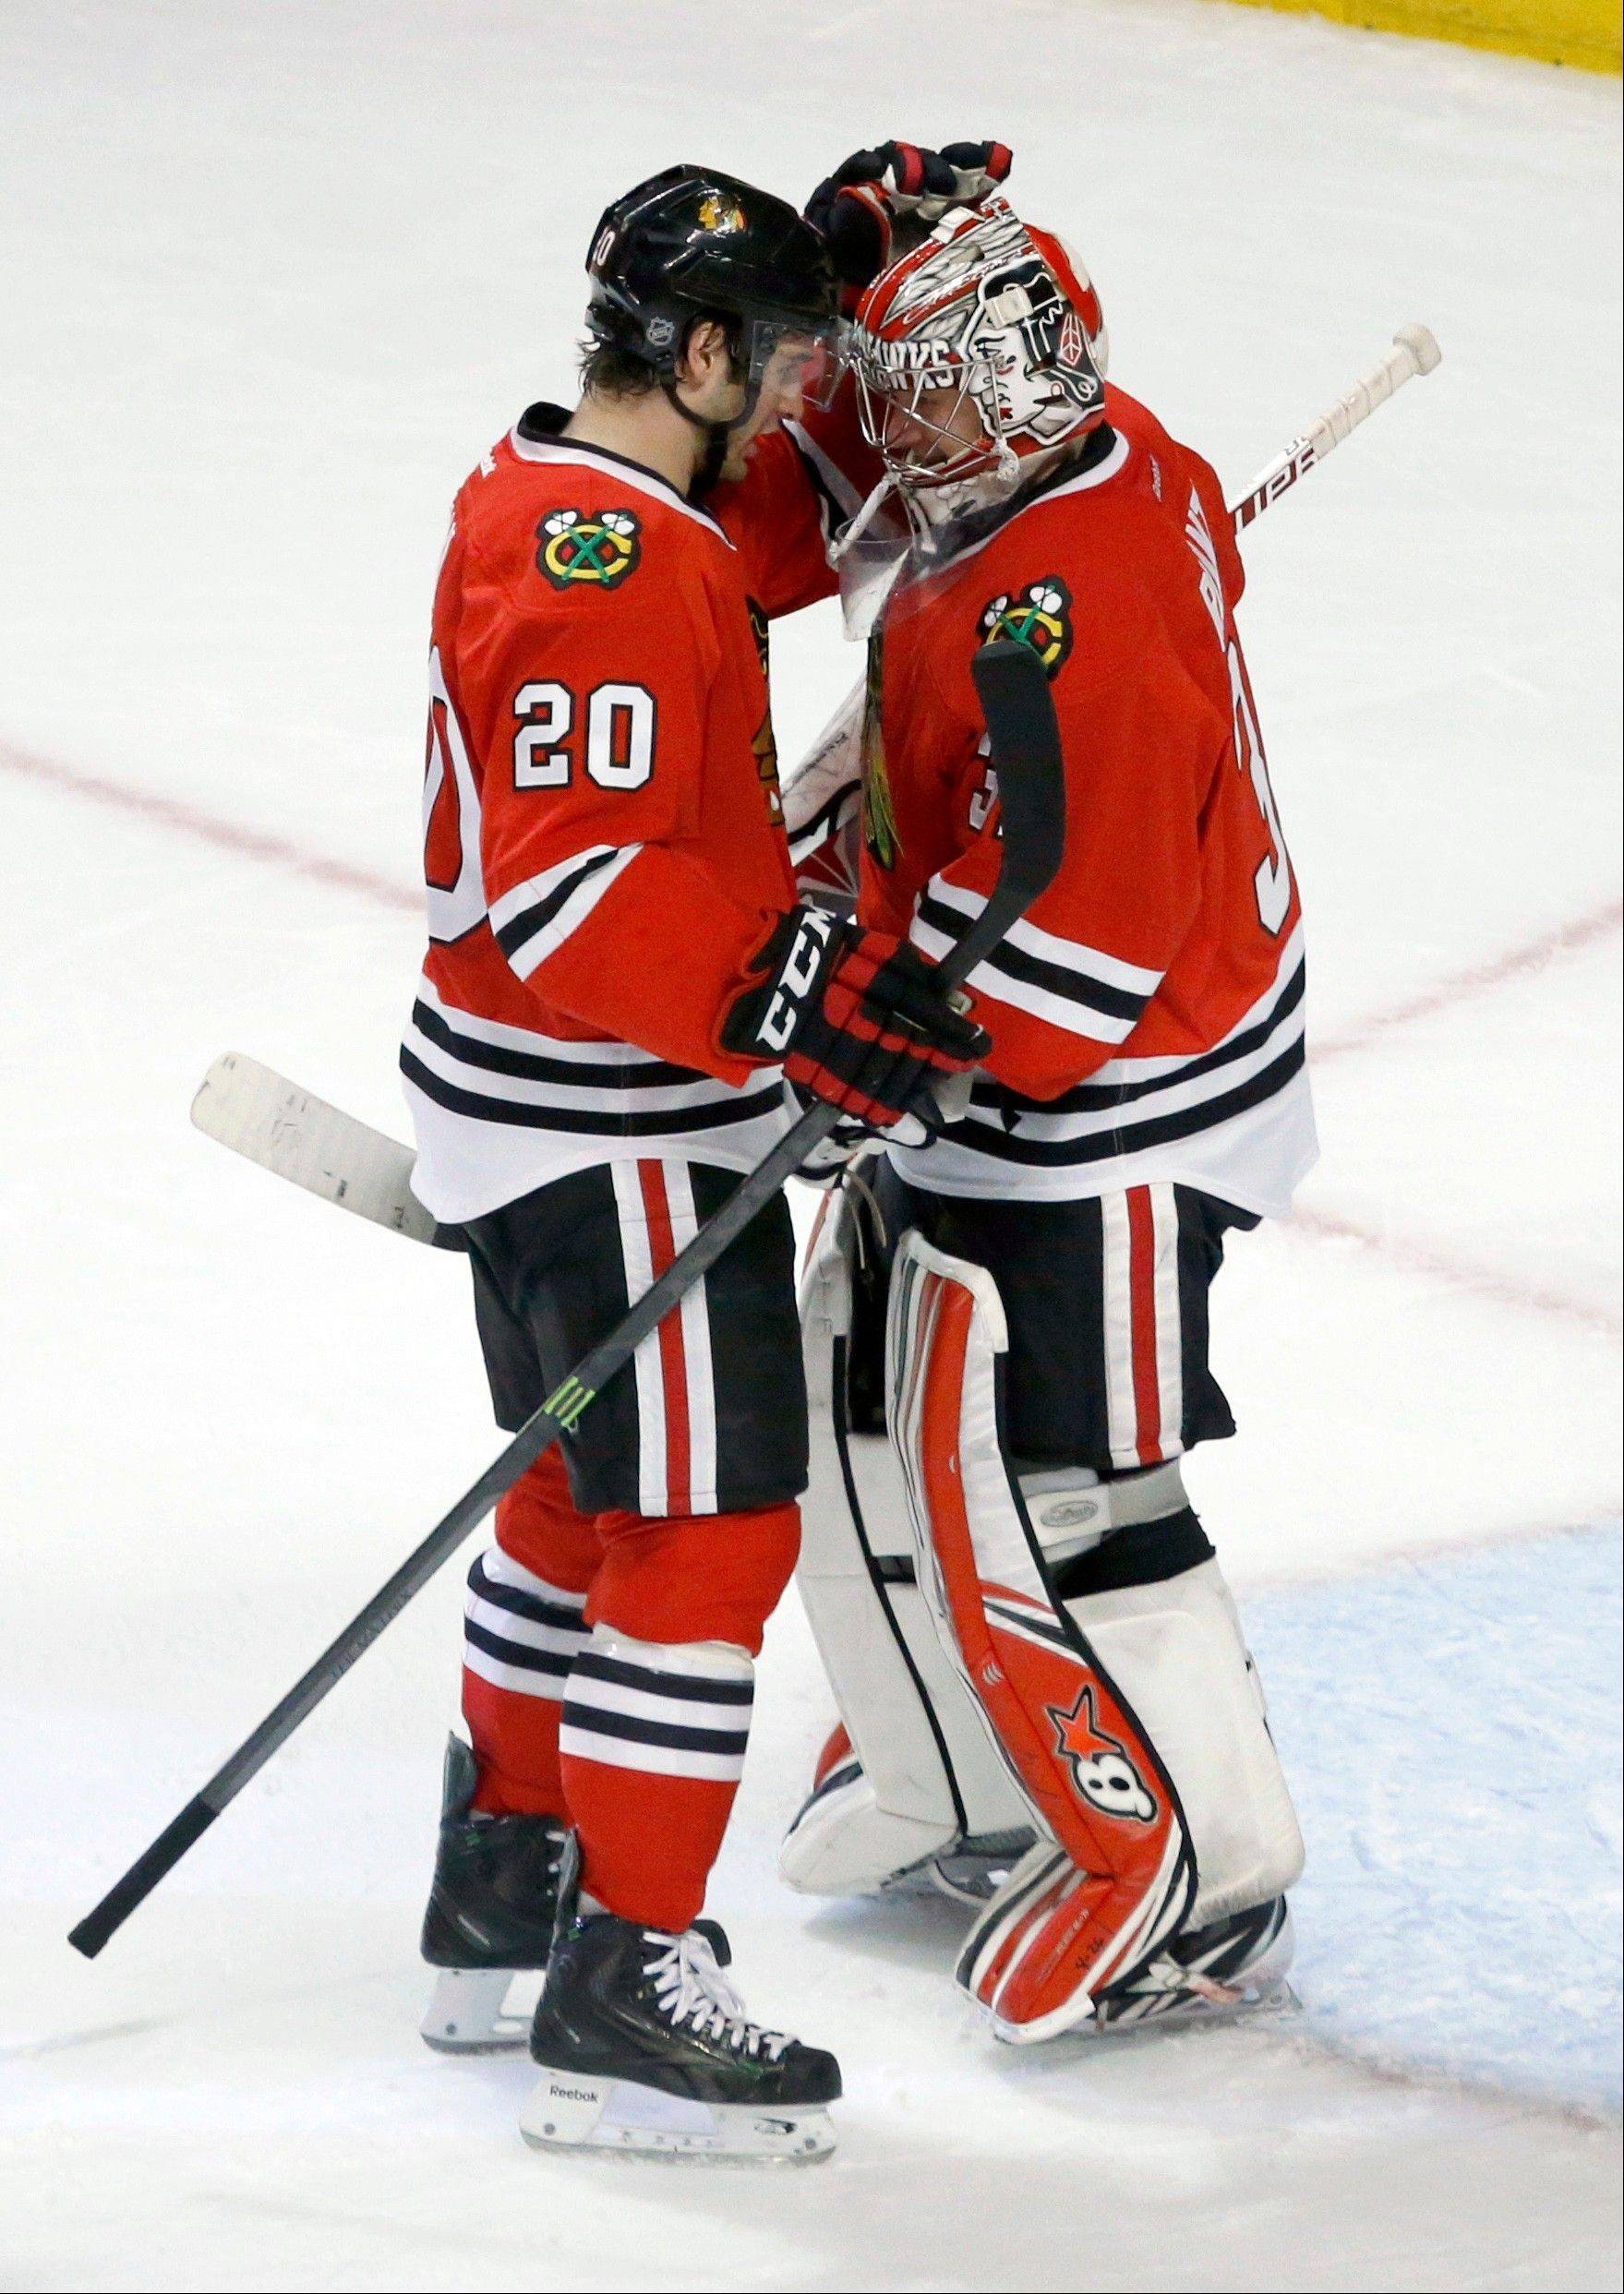 Brandon Saad, who scored the only goal, and rookie Antti Raanta, who recorded his first NHL shutout, celebrate the Blackhawks' 1-0 win over the Kings at the United Center on Monday night.